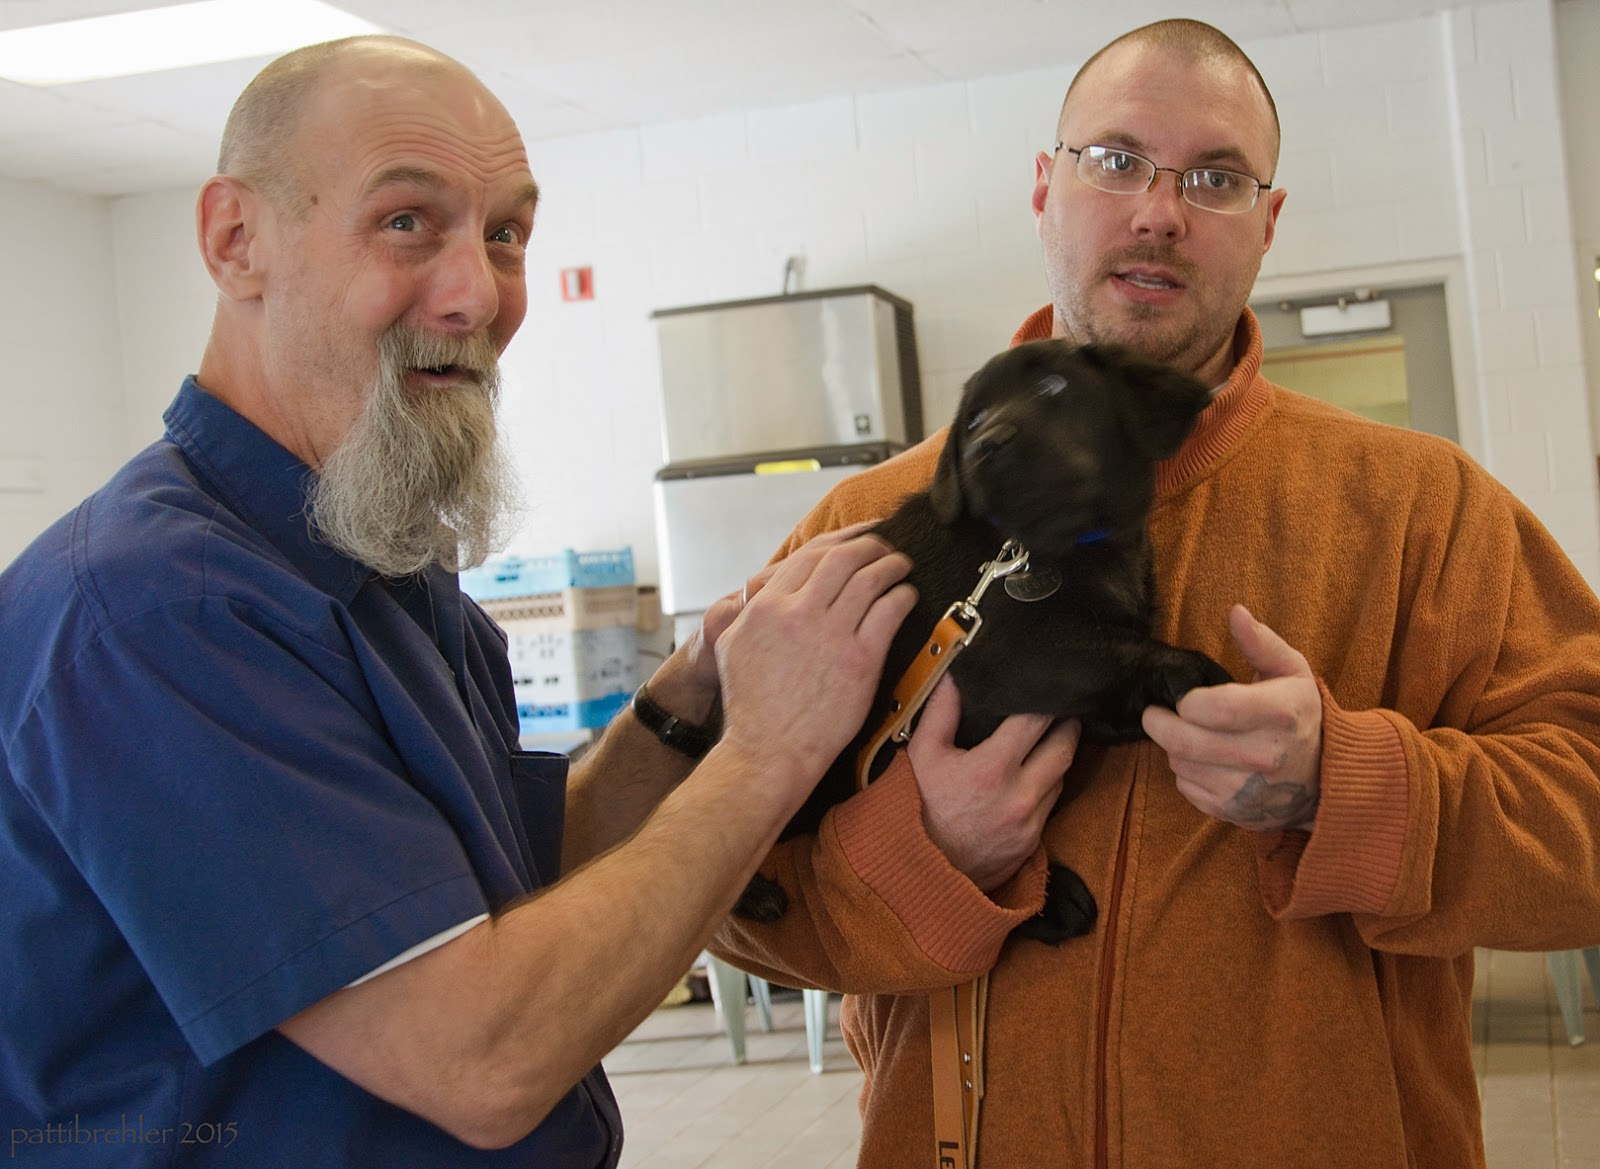 The man on the left has looked up to the camera with a surprised and excited look on his face while he continues to pet the lab puppy with his right hand. The man on the right is holding the puppy in his right arm and holding the puppy's front paw with his left hand. The puppy is snuggled into the man on the right's chest while looking at the man on the left, his eyes wide open.